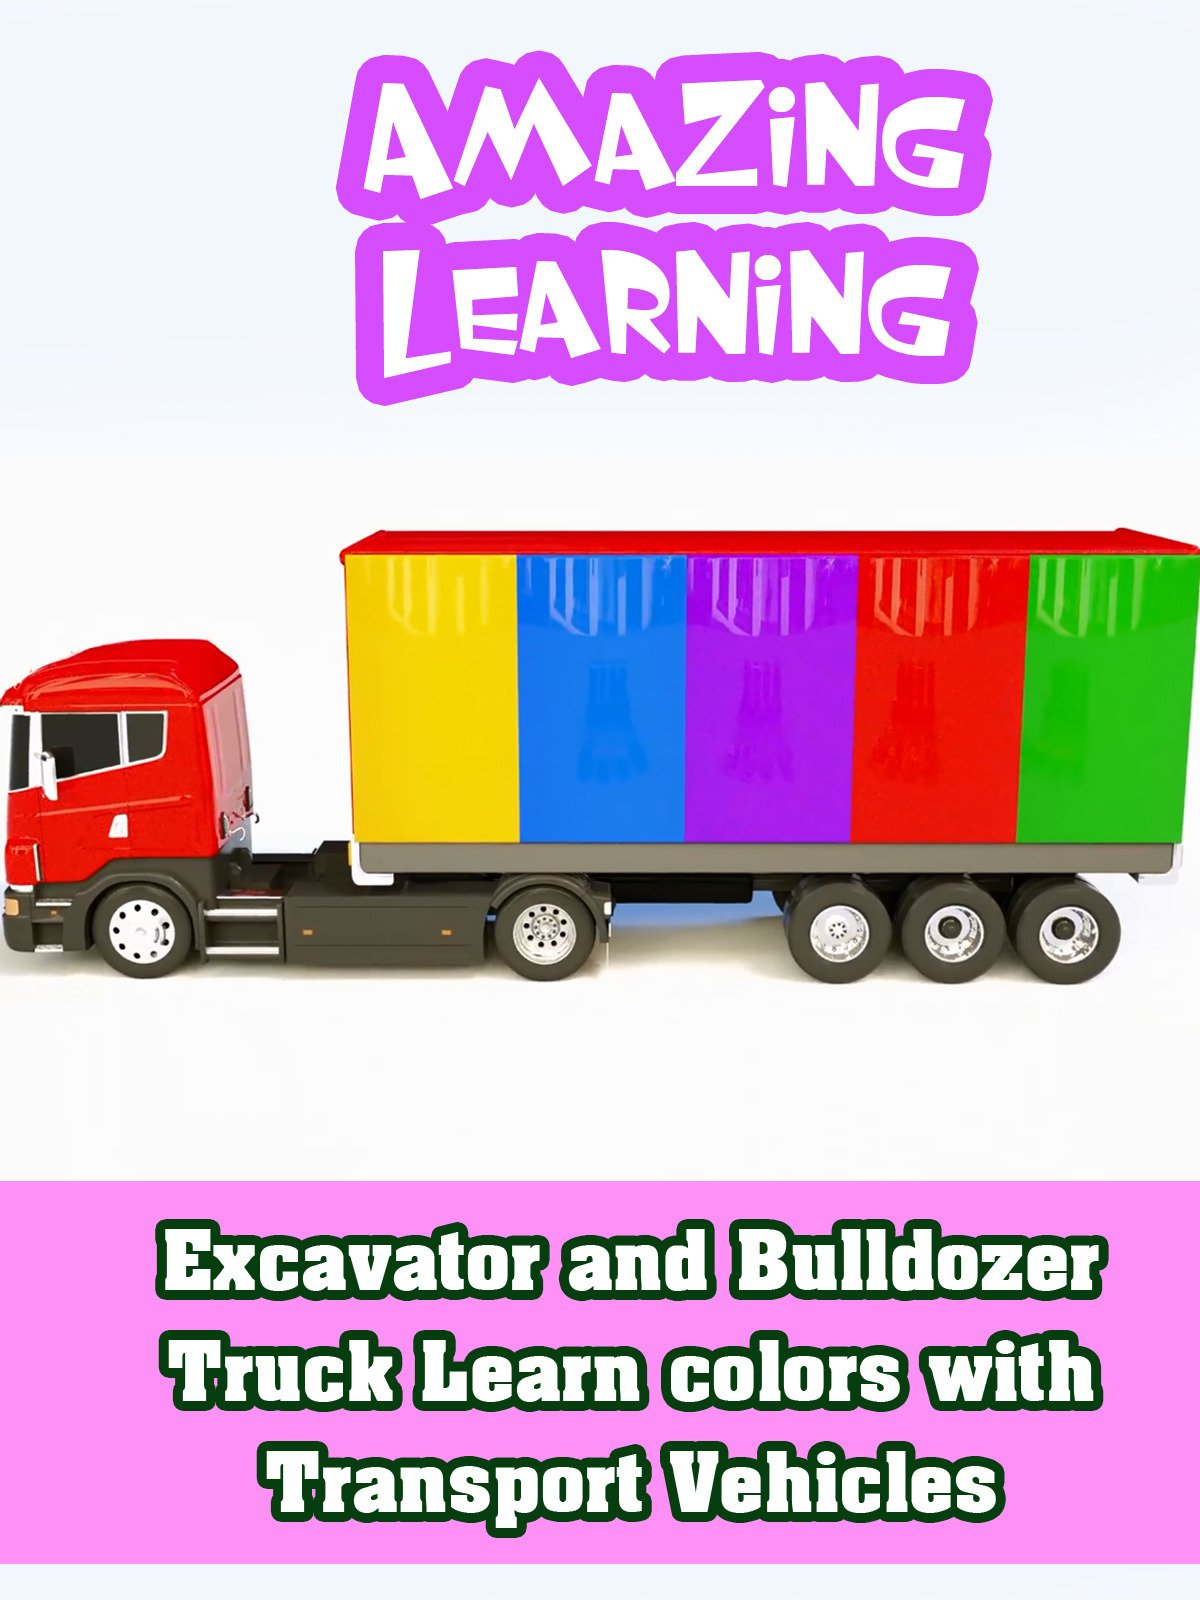 Excavator and Bulldozer Truck Learn colors with Transport Vehicles